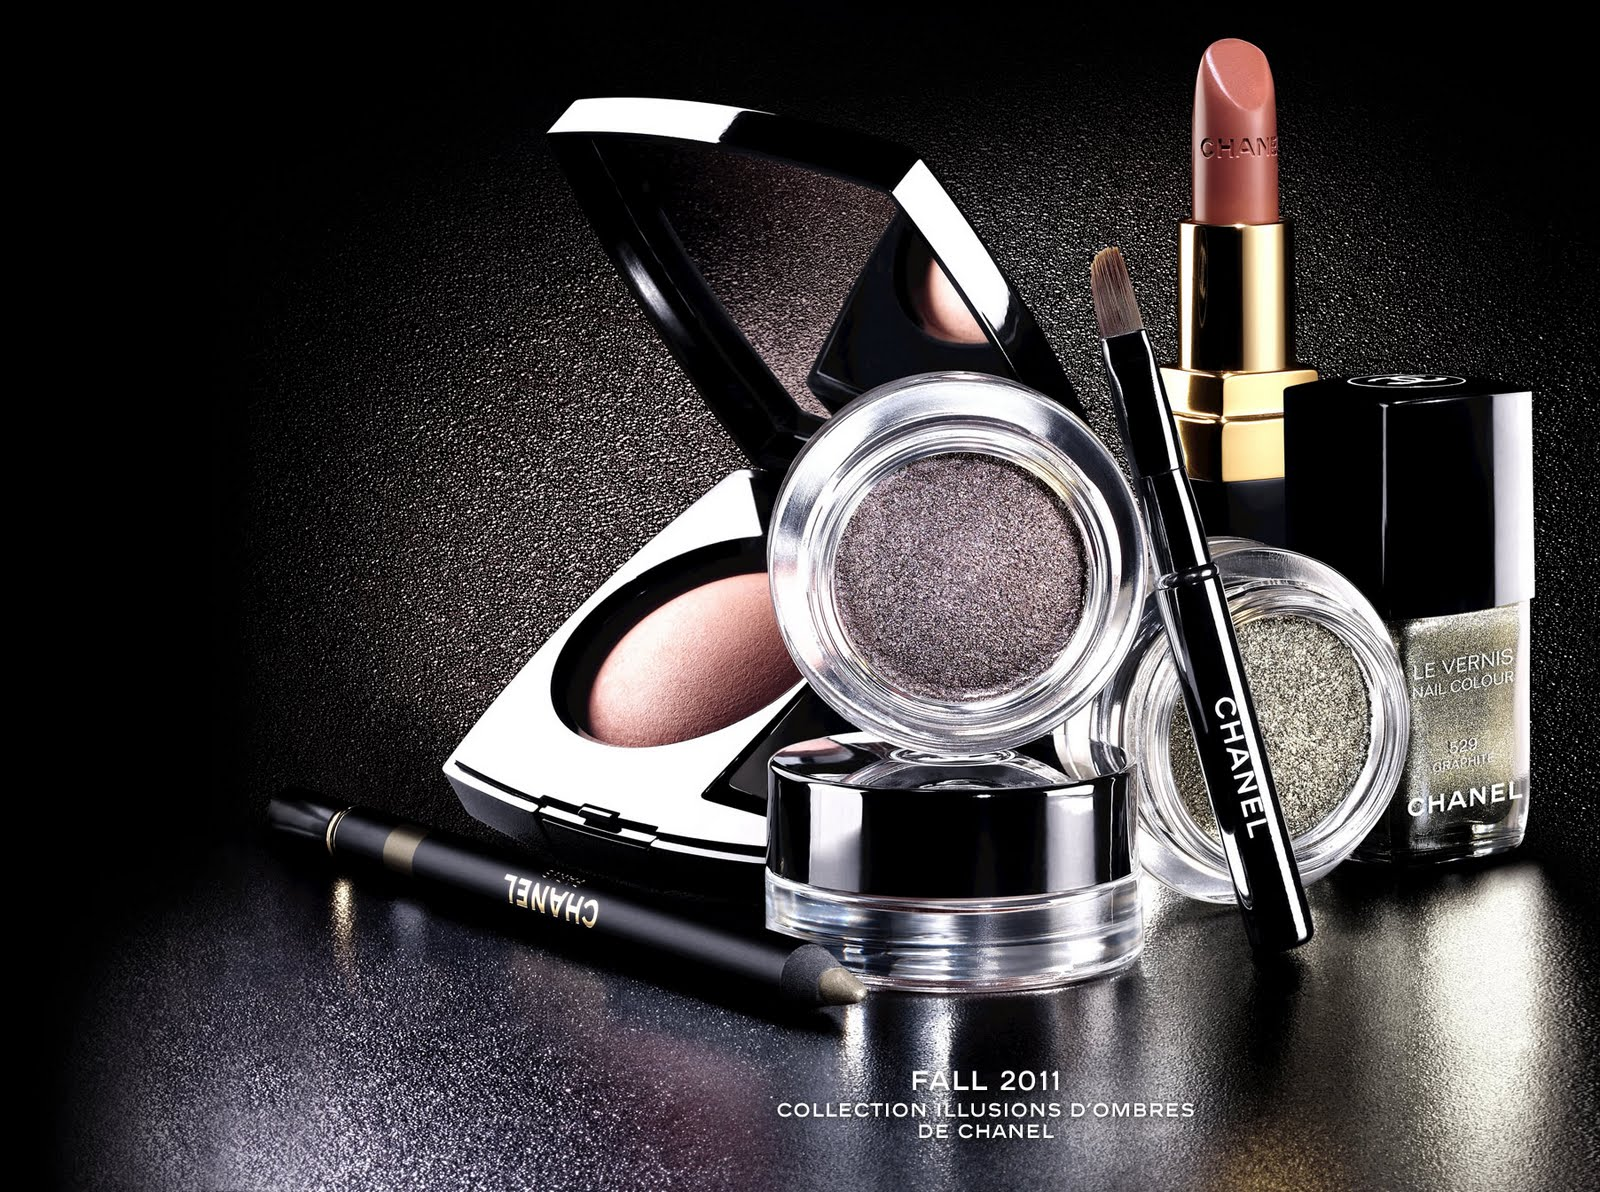 Beauty Anonymous: Chanel Fall 2011 Makeup Collection